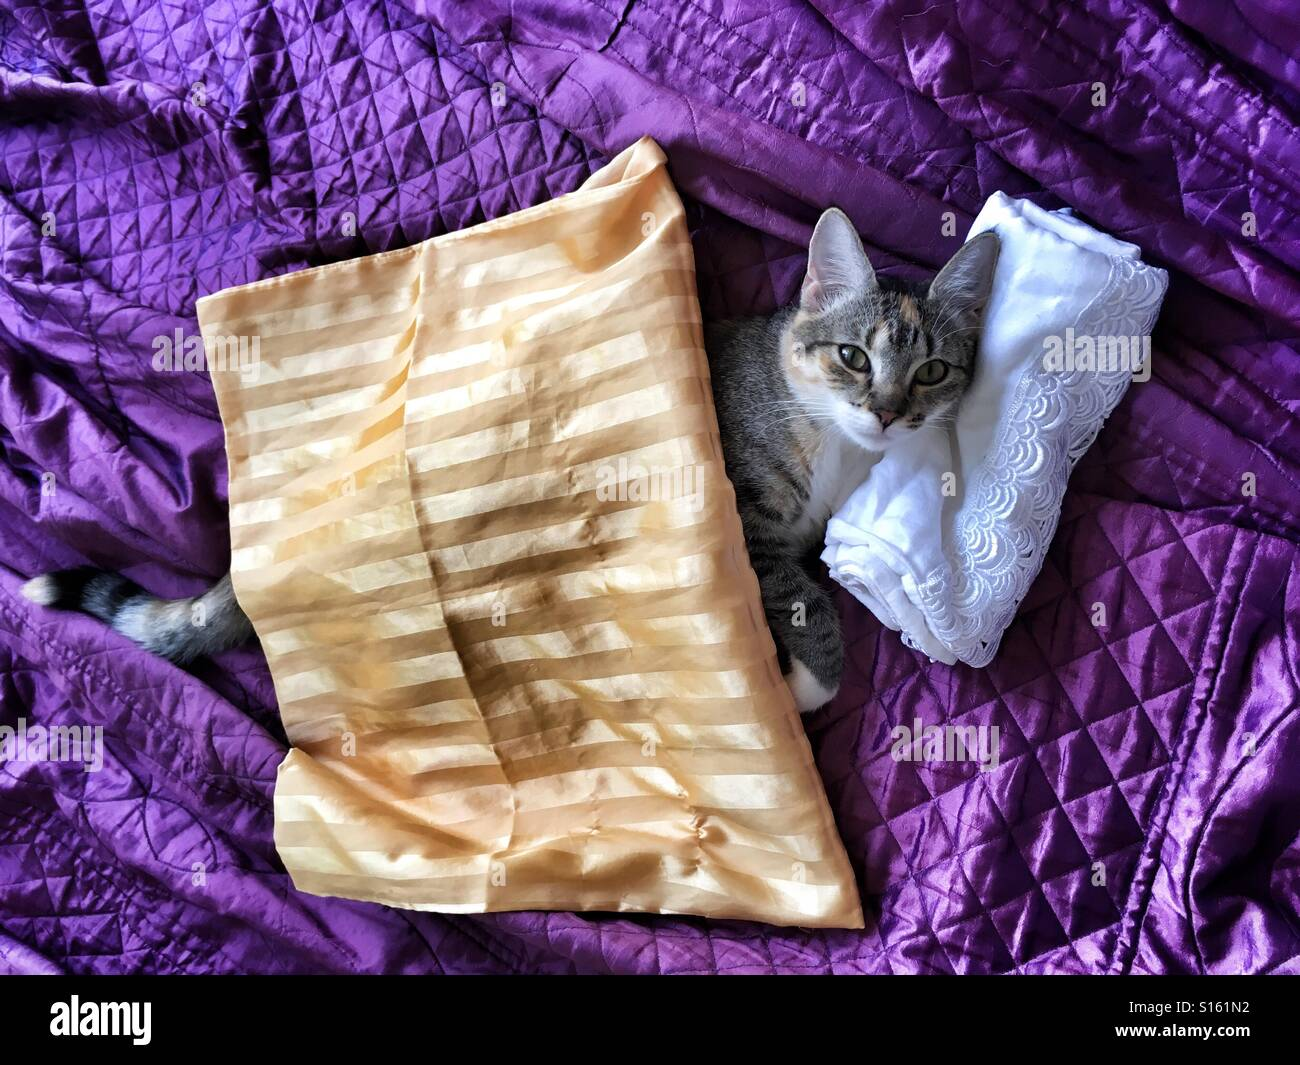 Cat in bed. - Stock Image